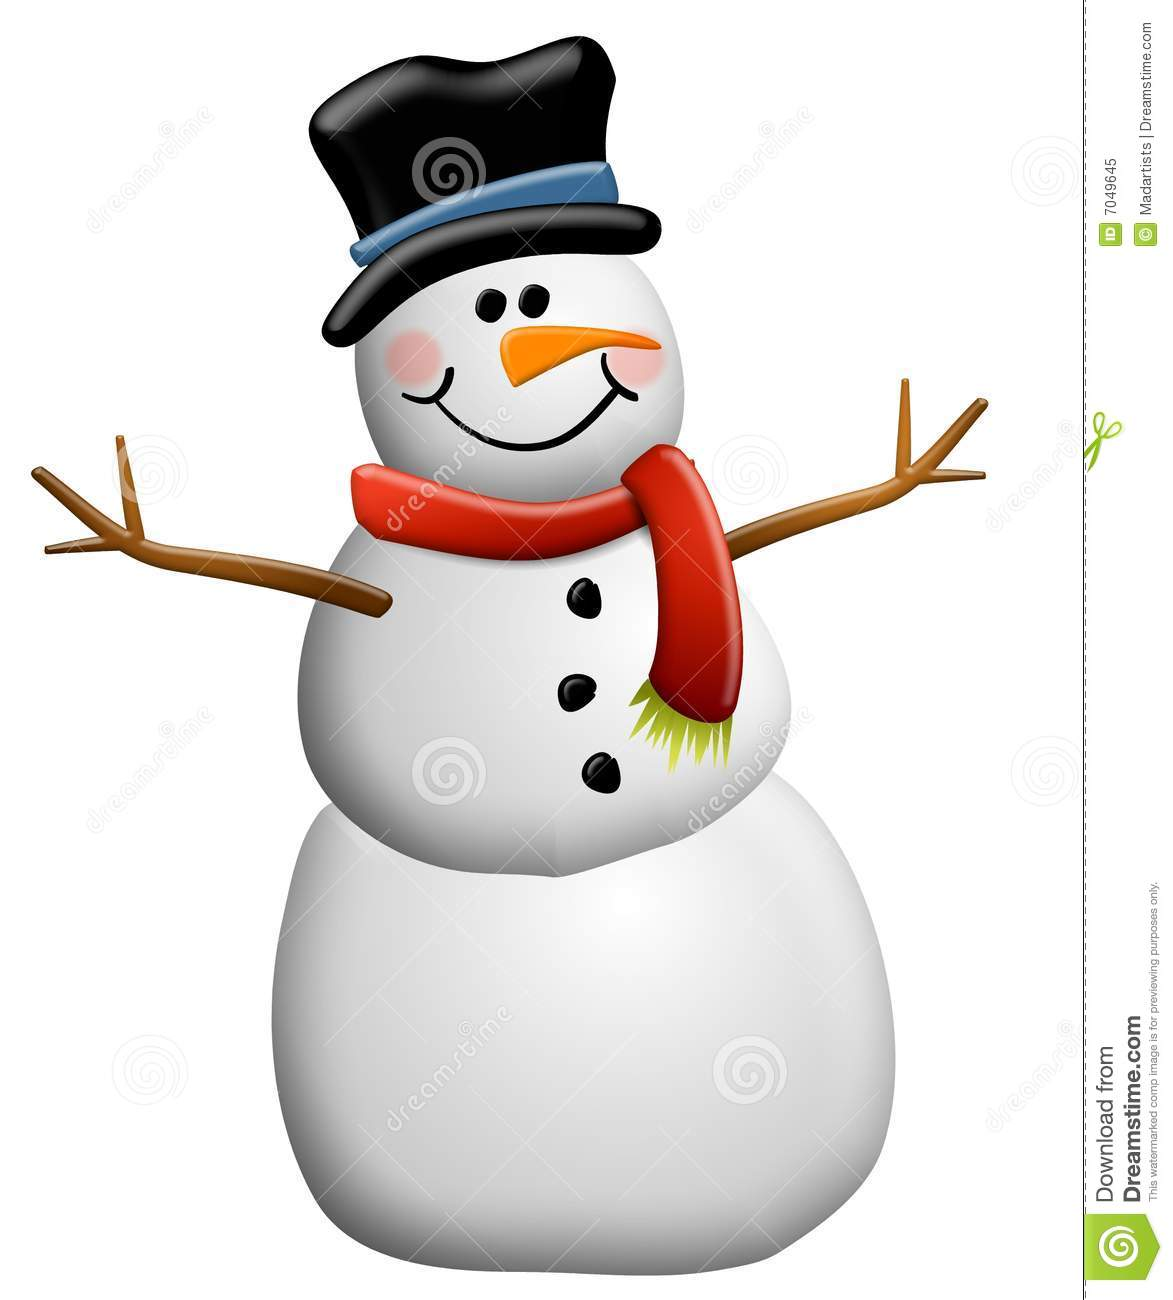 Snowman Clip Art Isolated Royalty Free Stock Photo - Image: 7049645